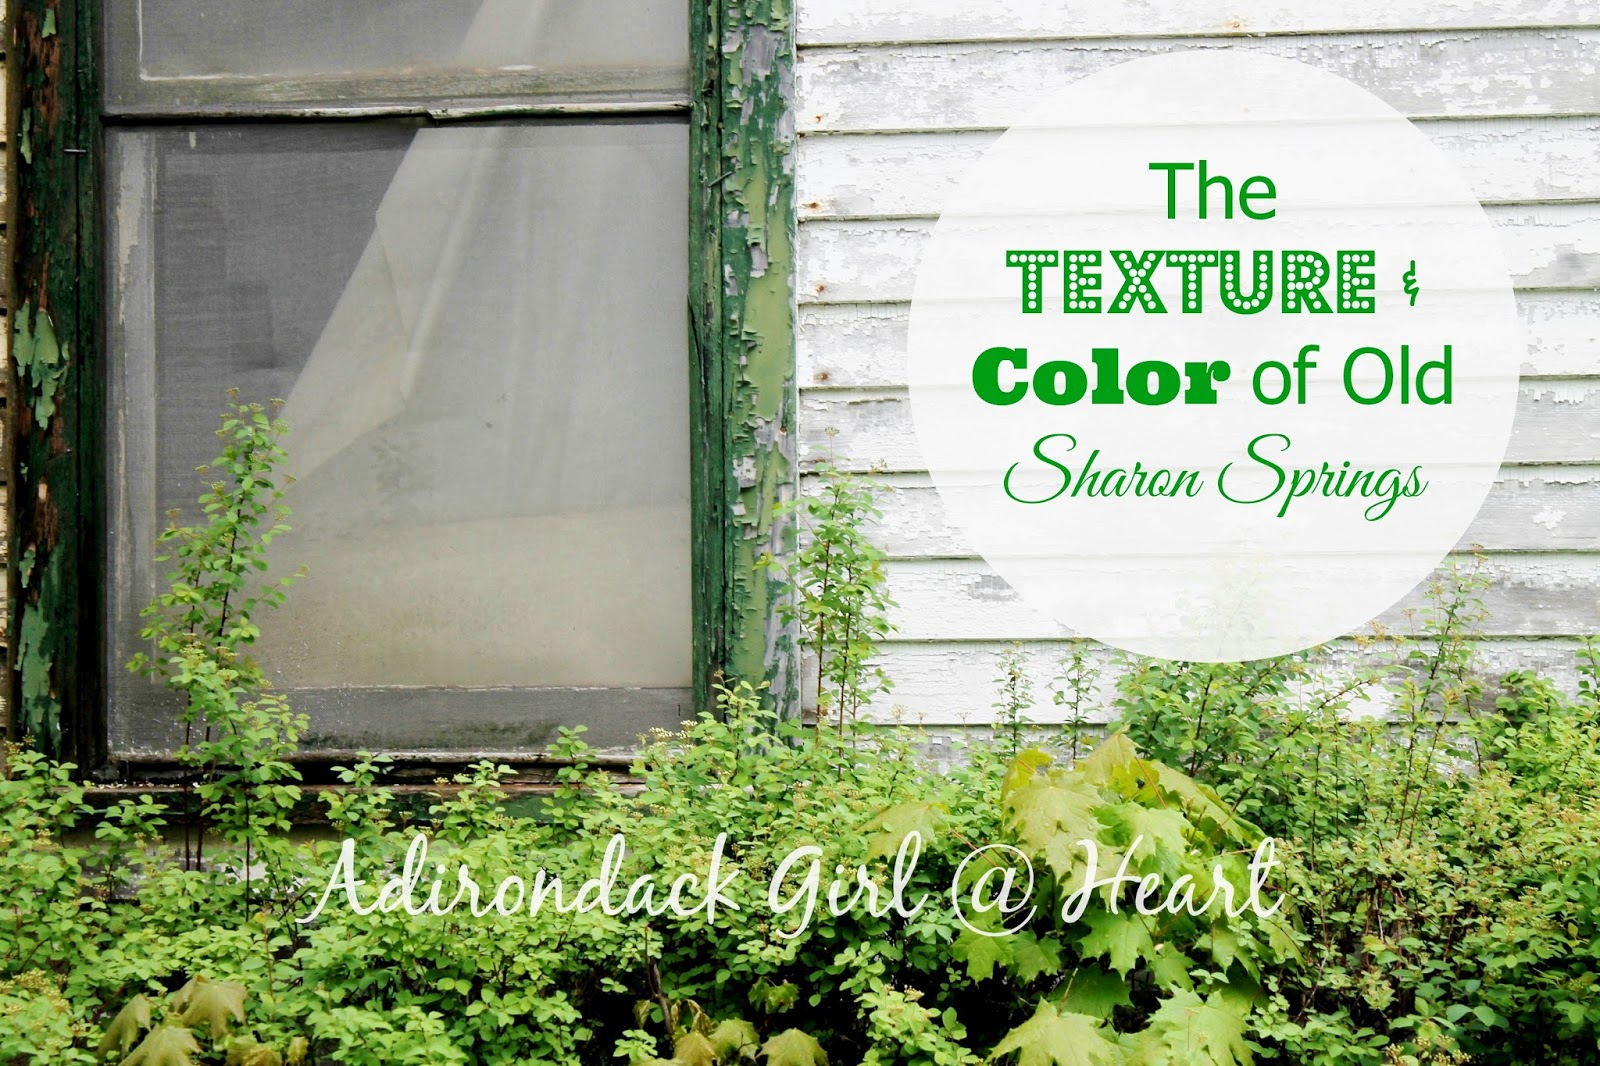 The Texture & Color of Old Sharon Springs